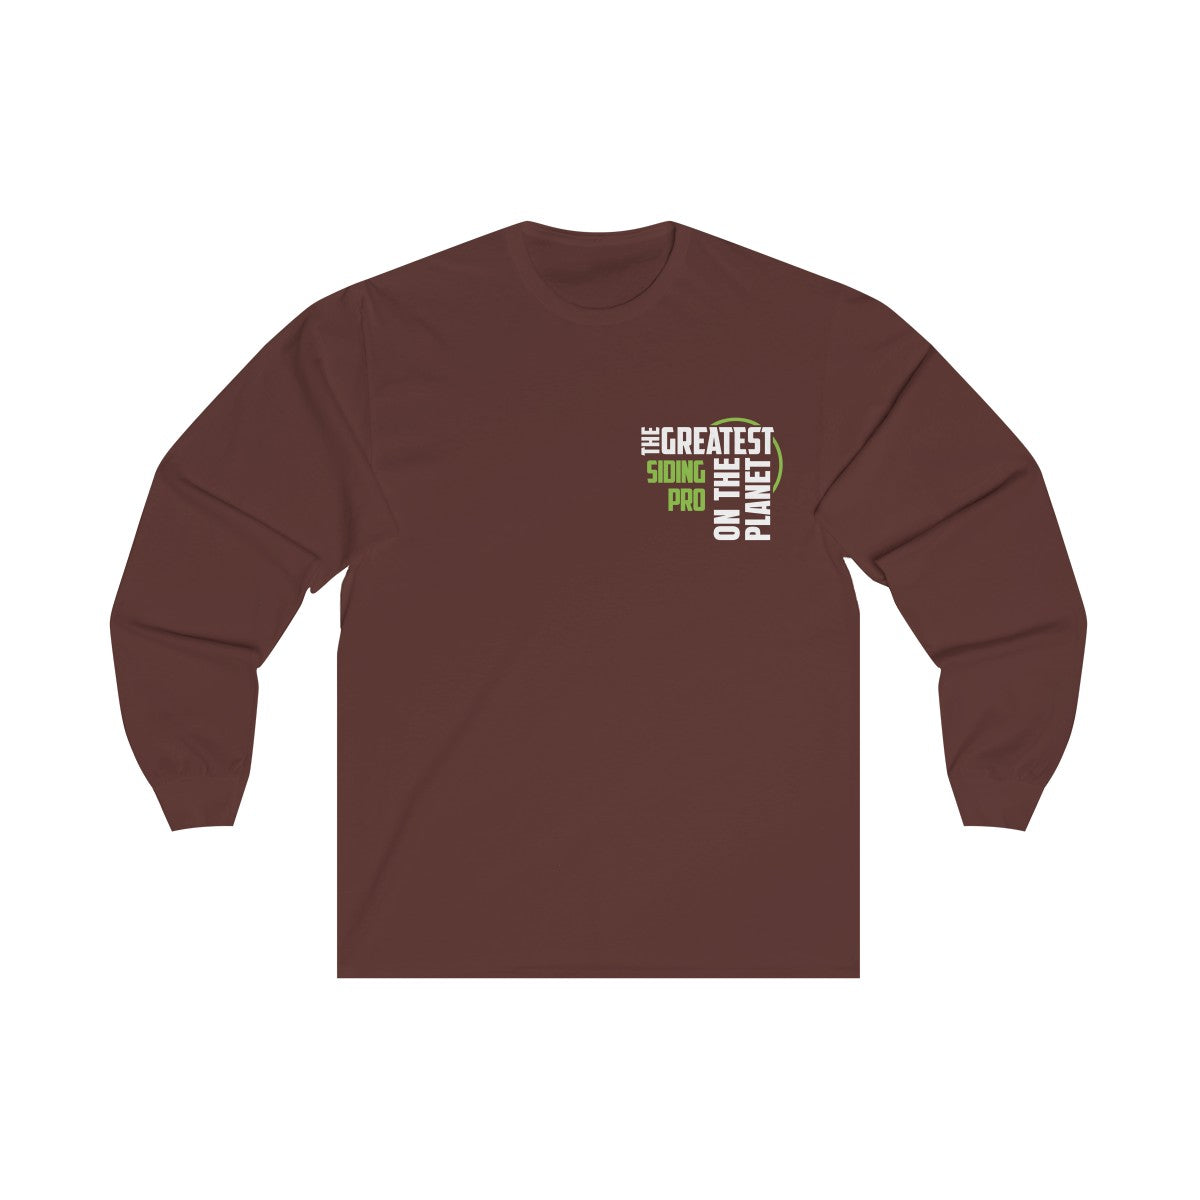 Women's Long Sleeve Tee - Siding Pro